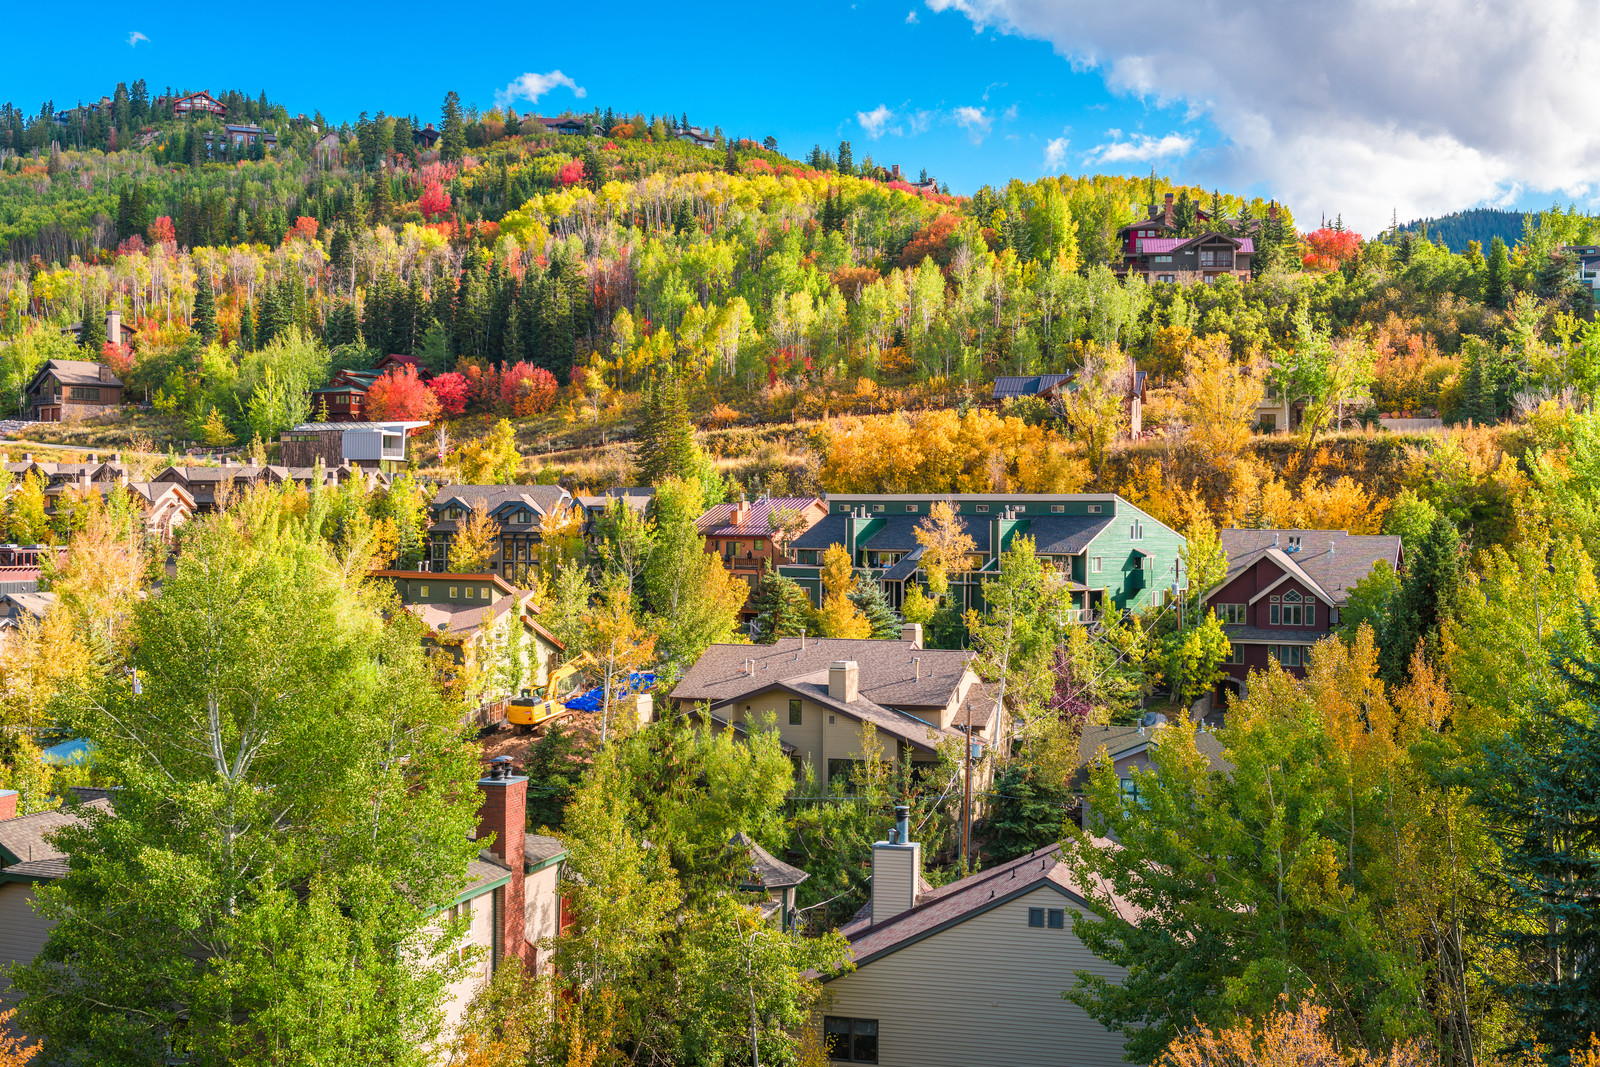 Housing scape along the hills amongst fall colored trees and blue skies